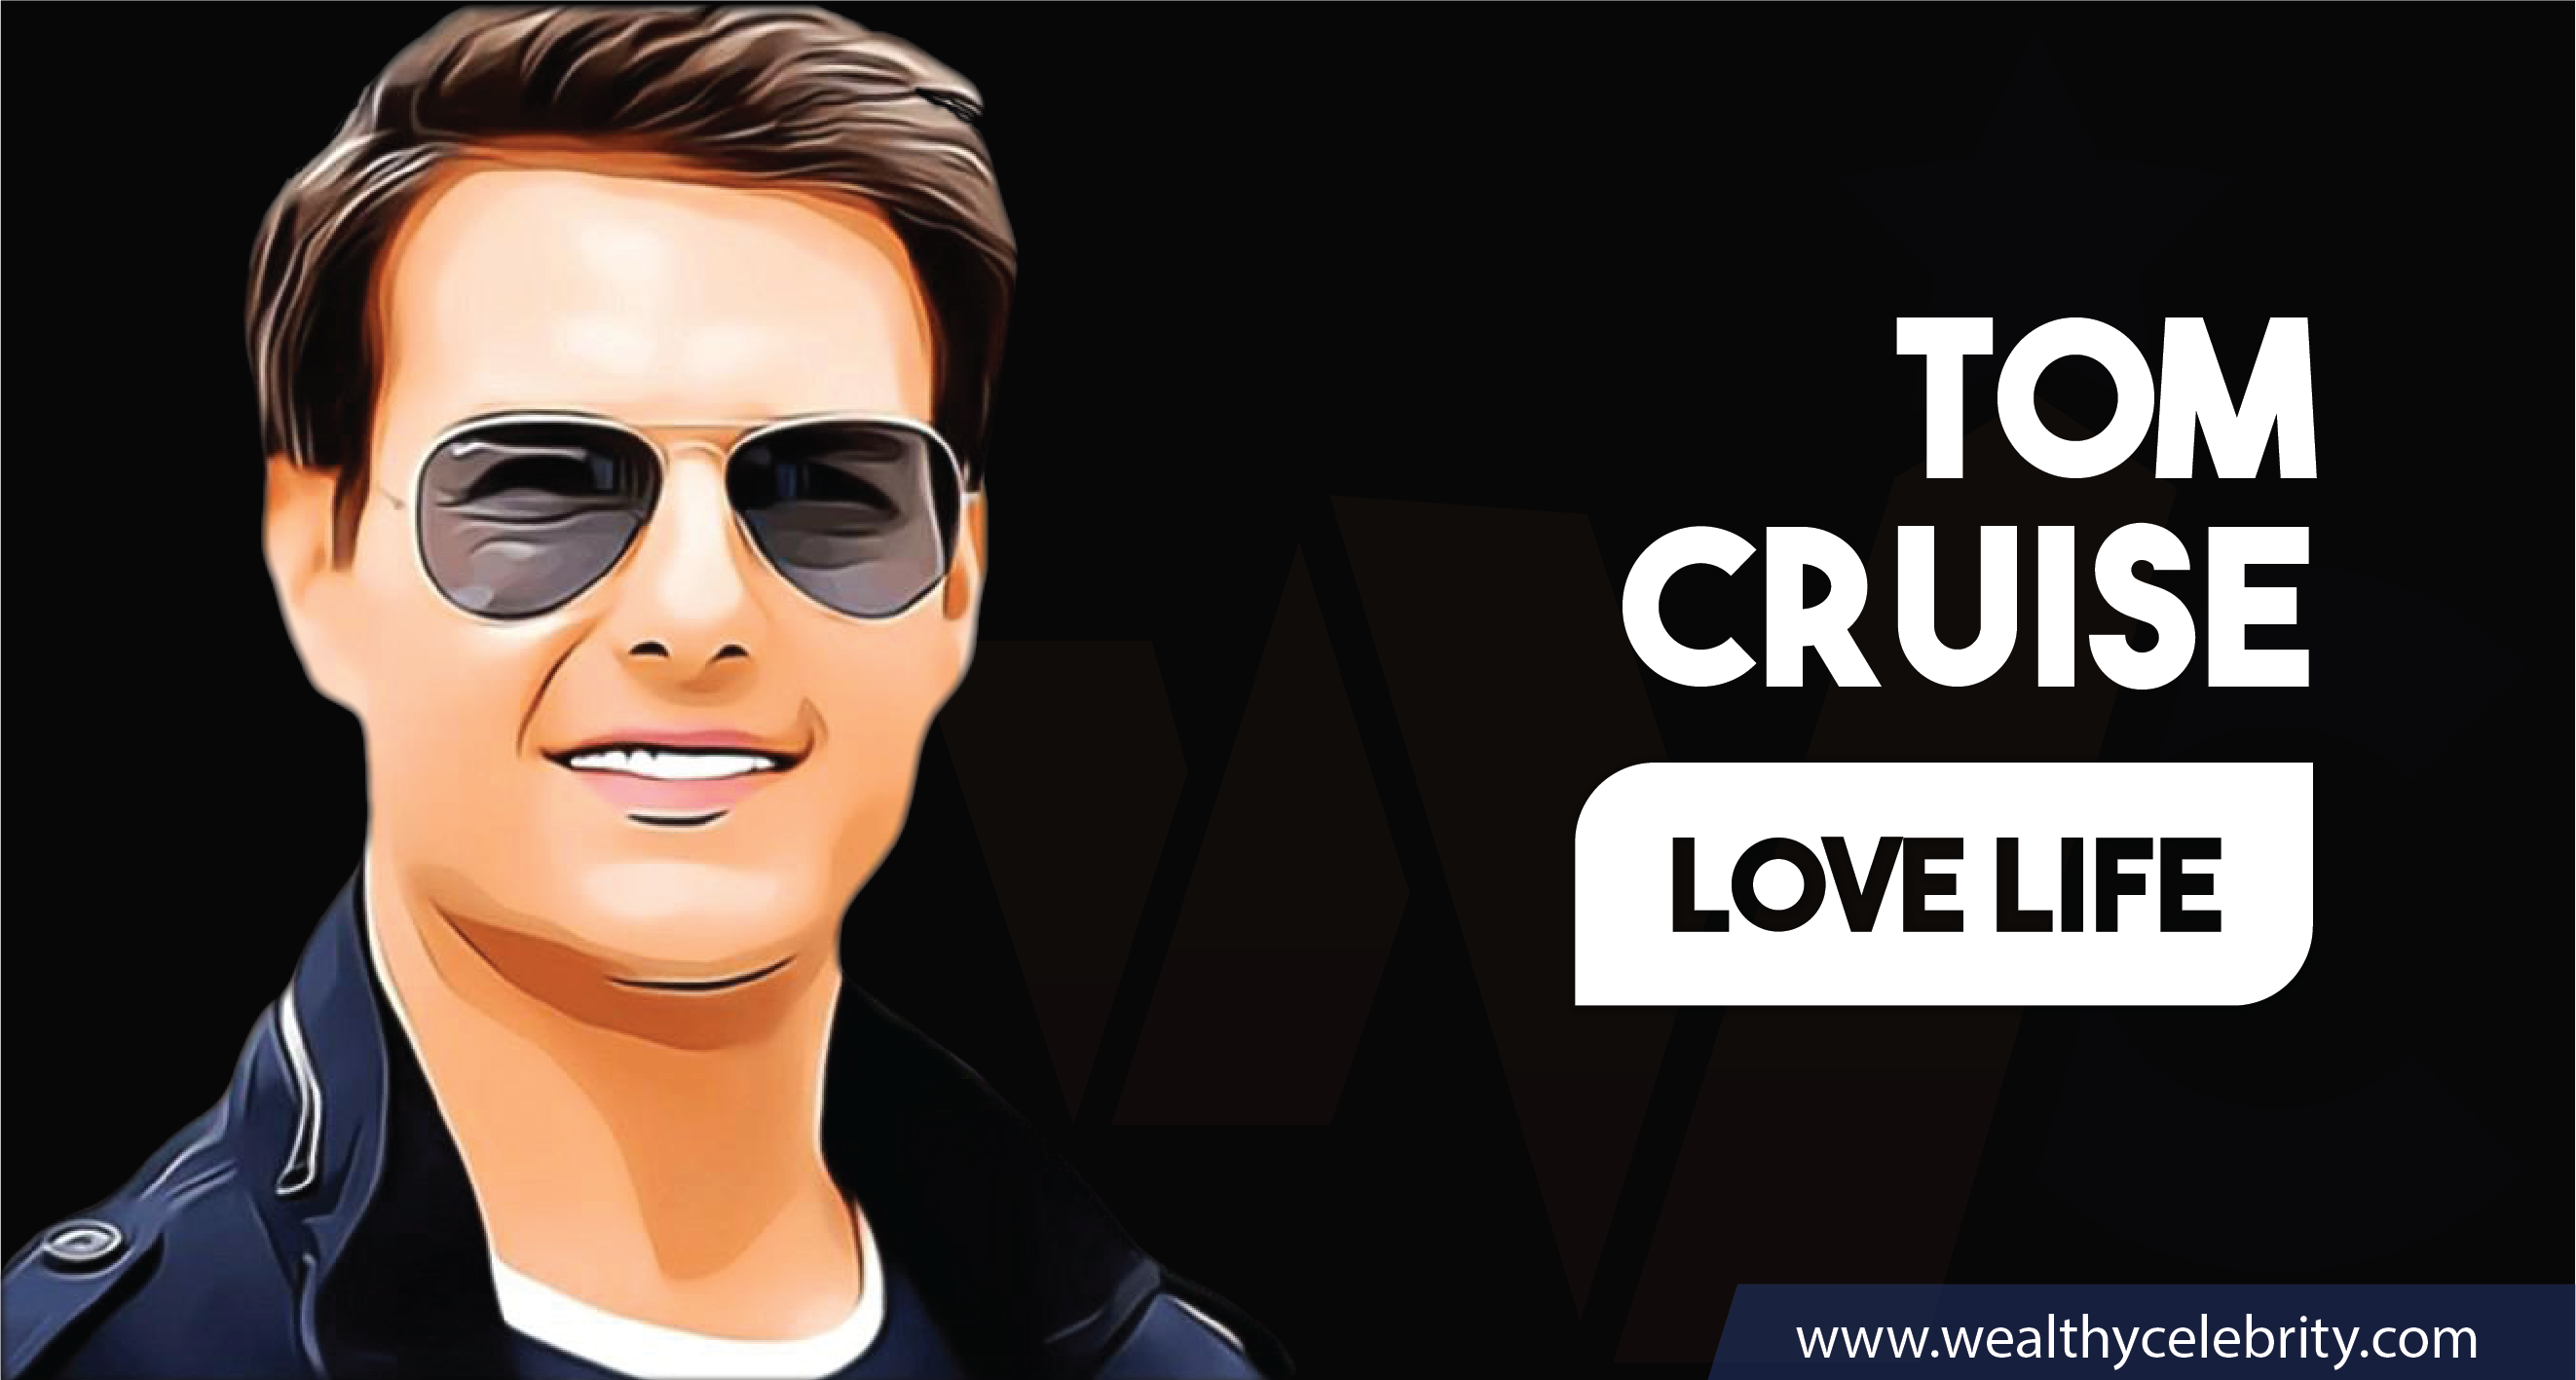 Tom Cruise_Love Life